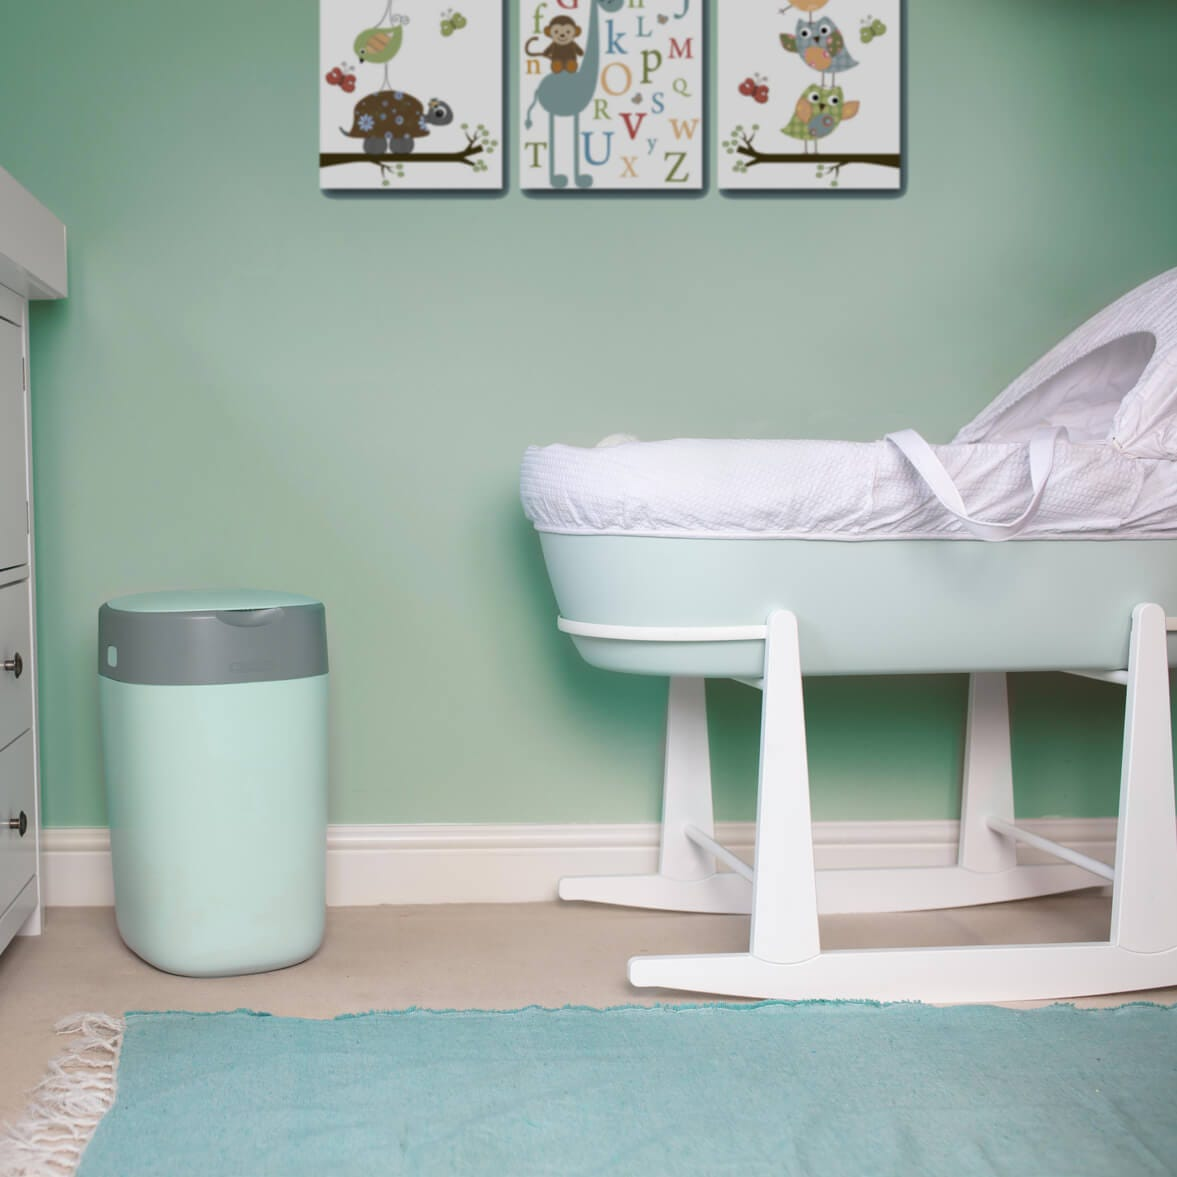 green-twist-and-click-nappy-bin-in-green-nursery-next-to-green-sleepee-basket